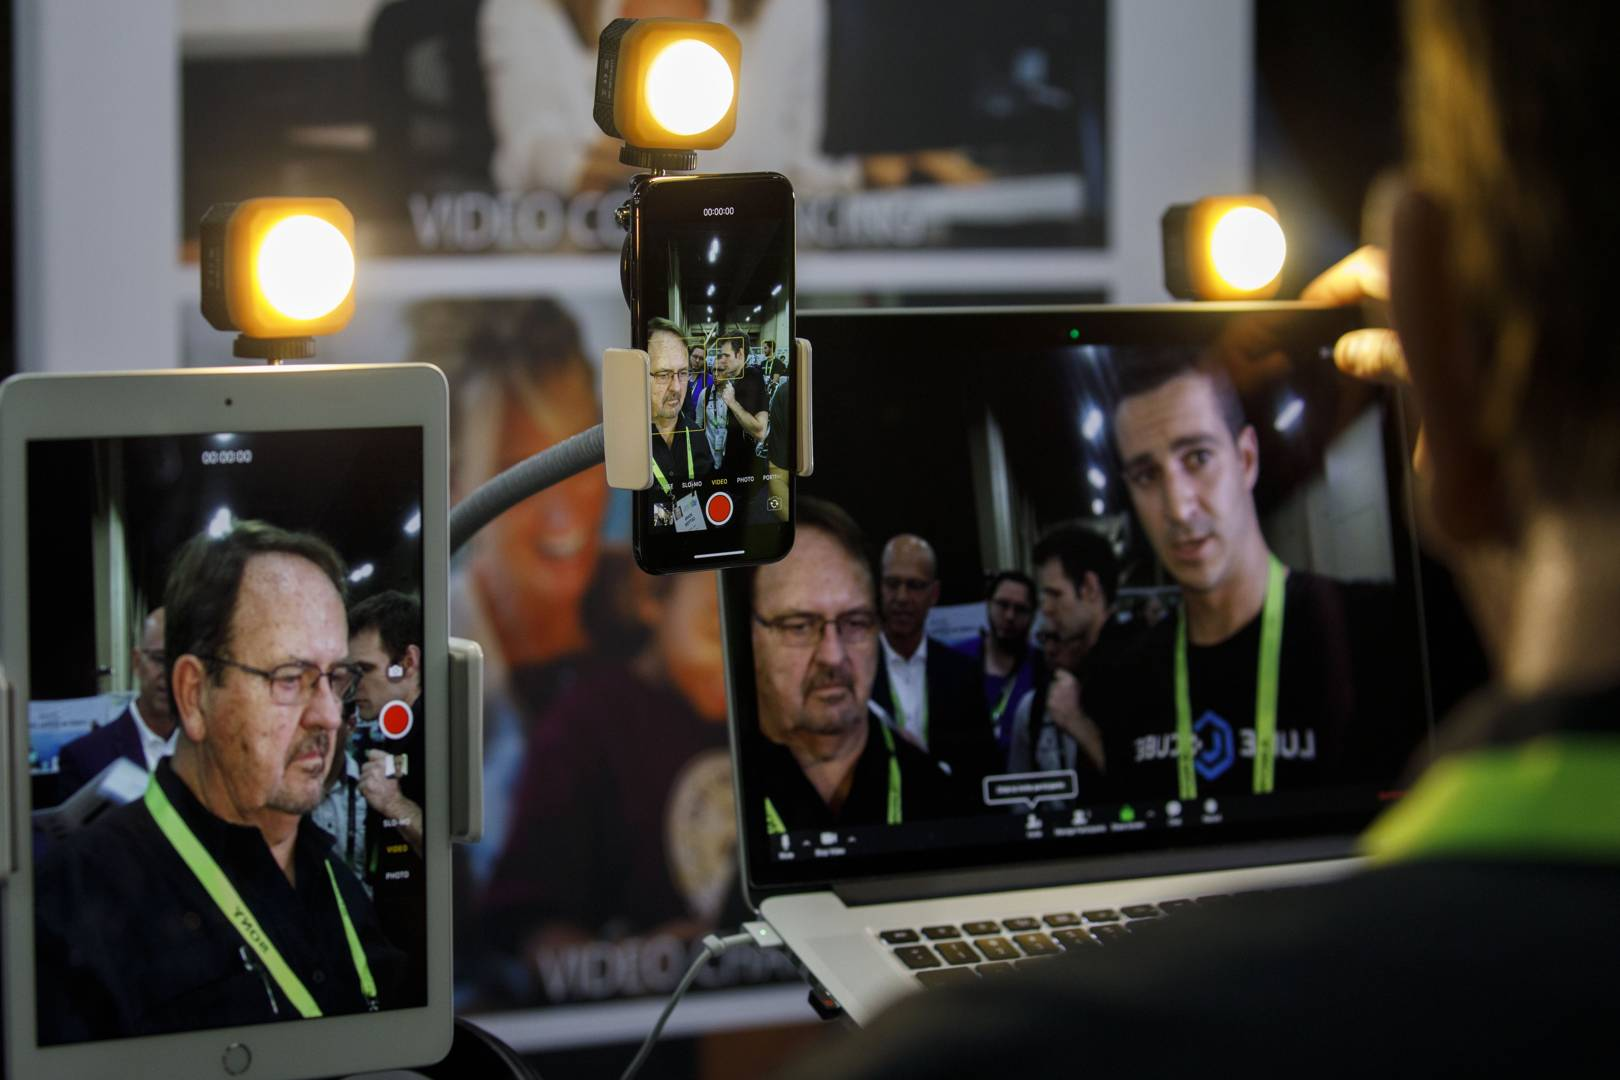 All the latest news and highlights from CES 2019 - ICT news